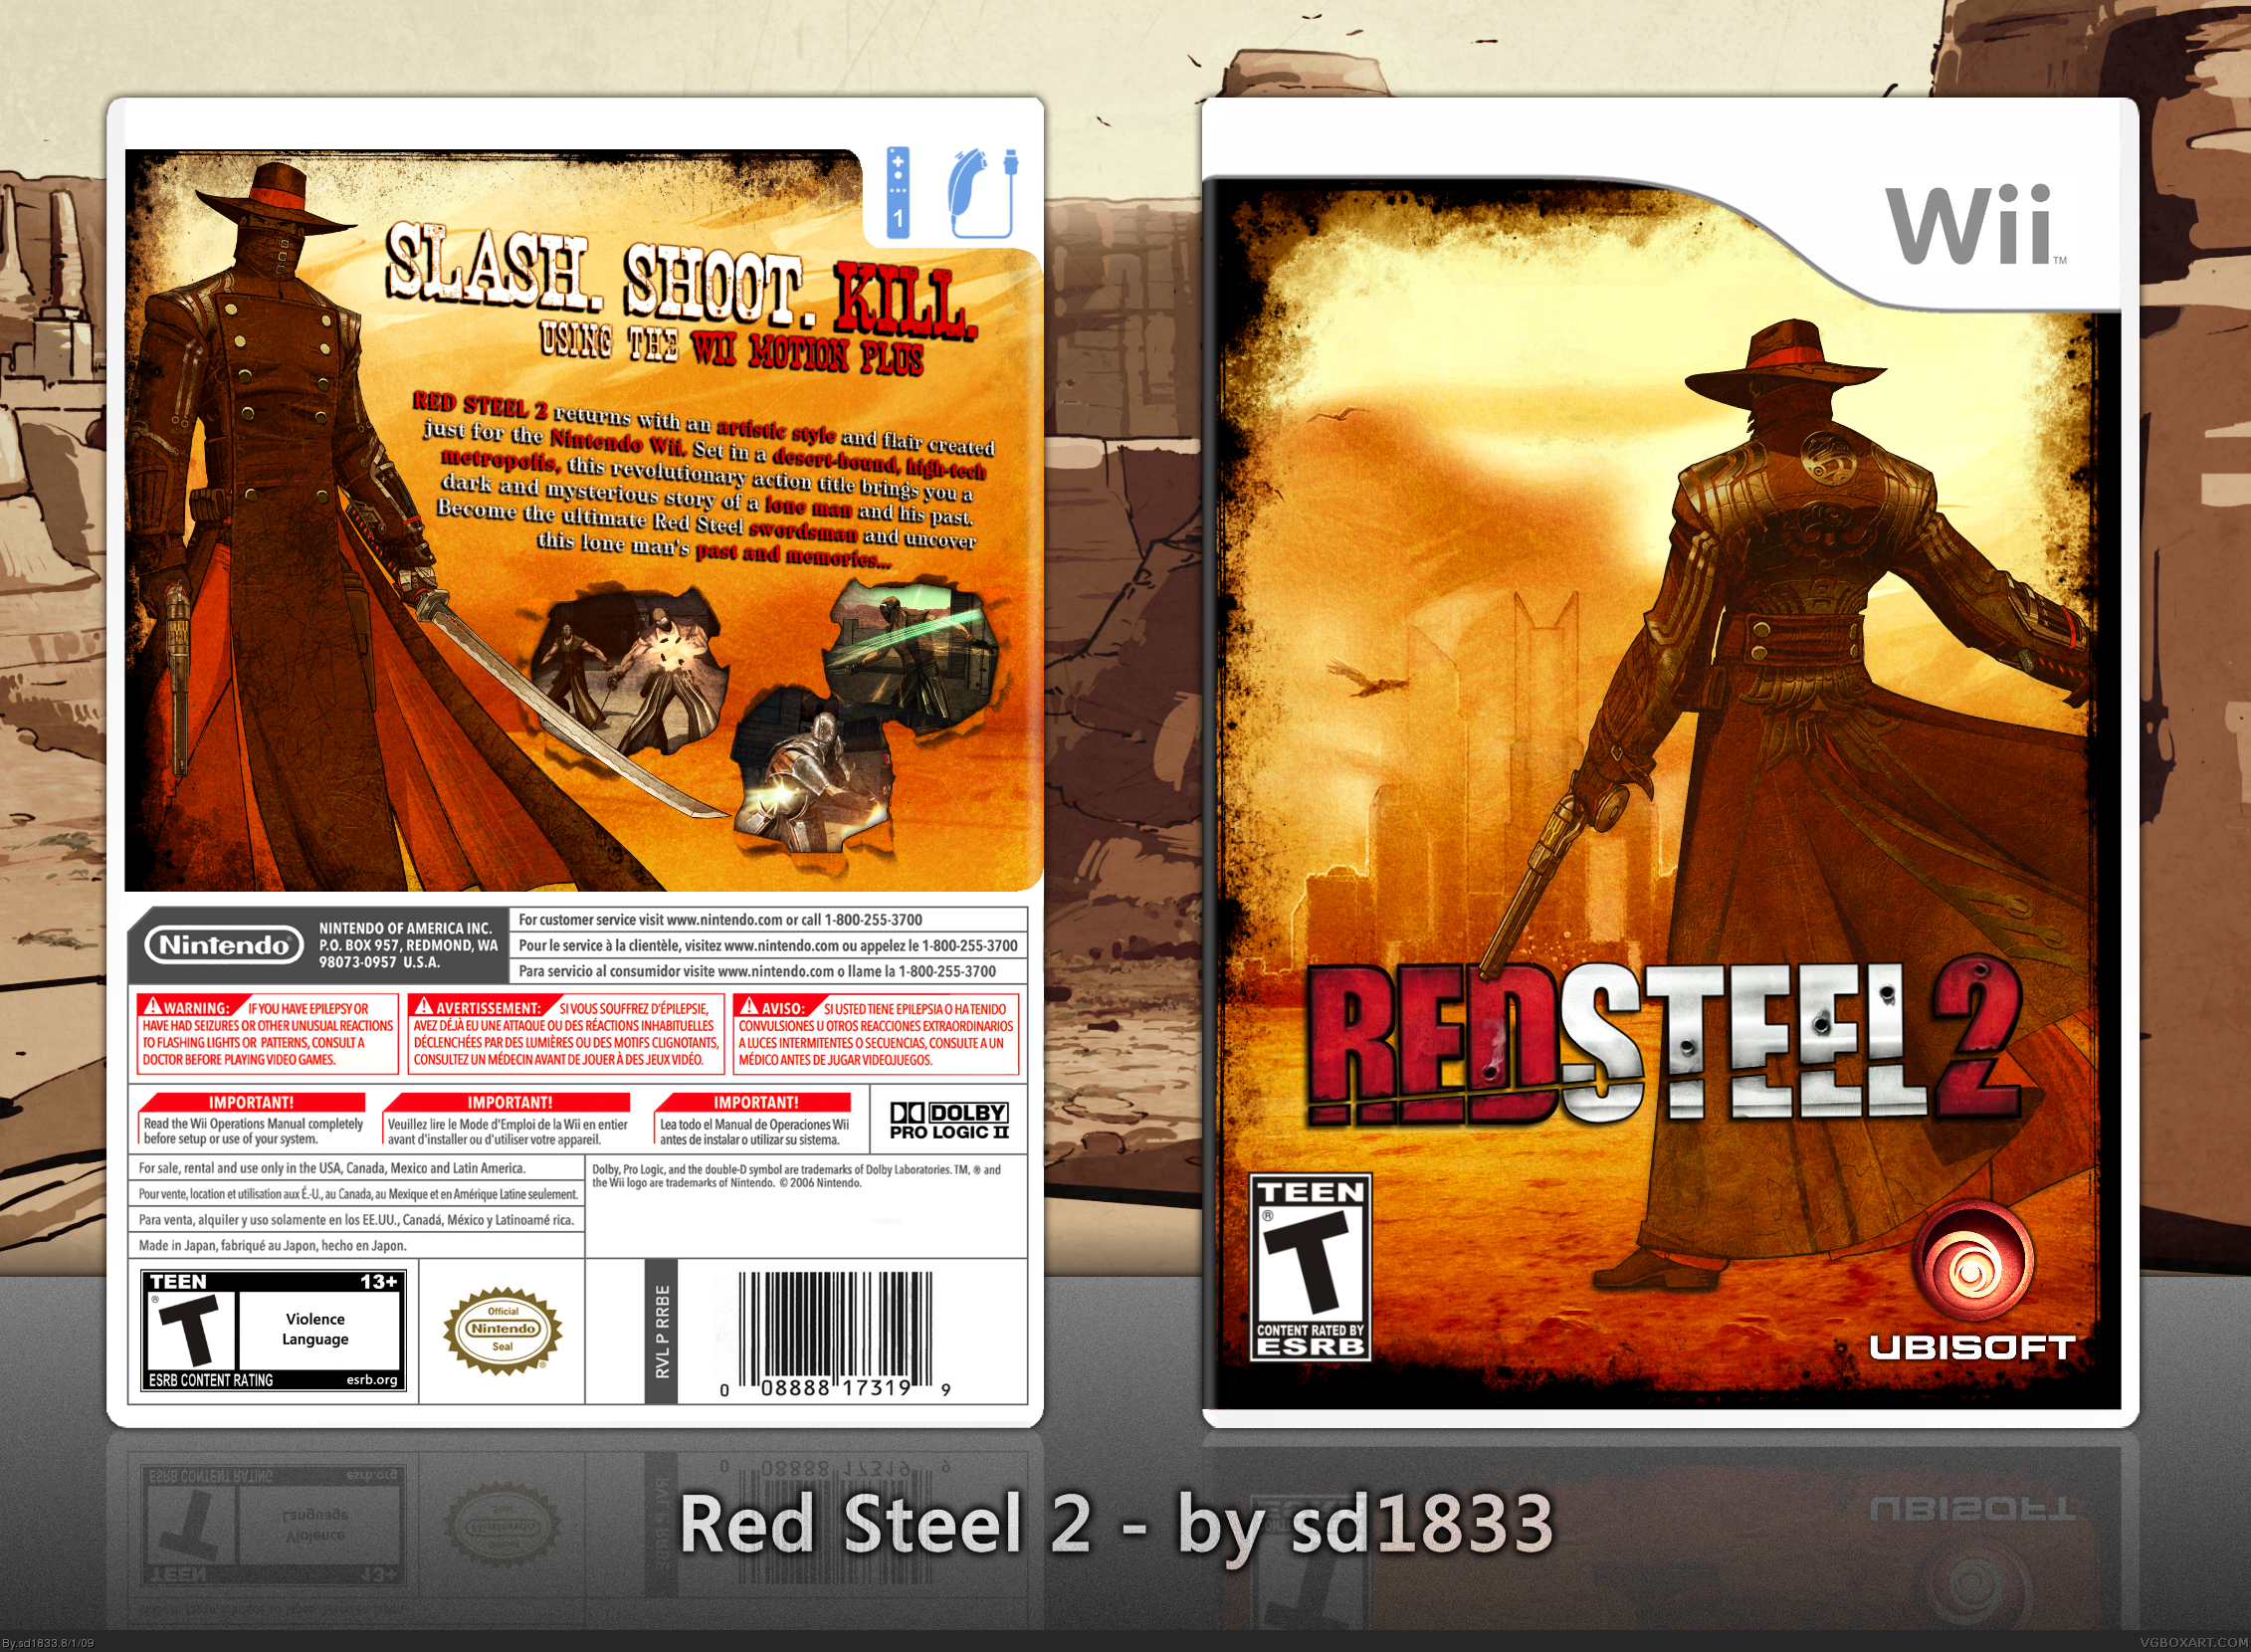 Red Steel 2 box cover